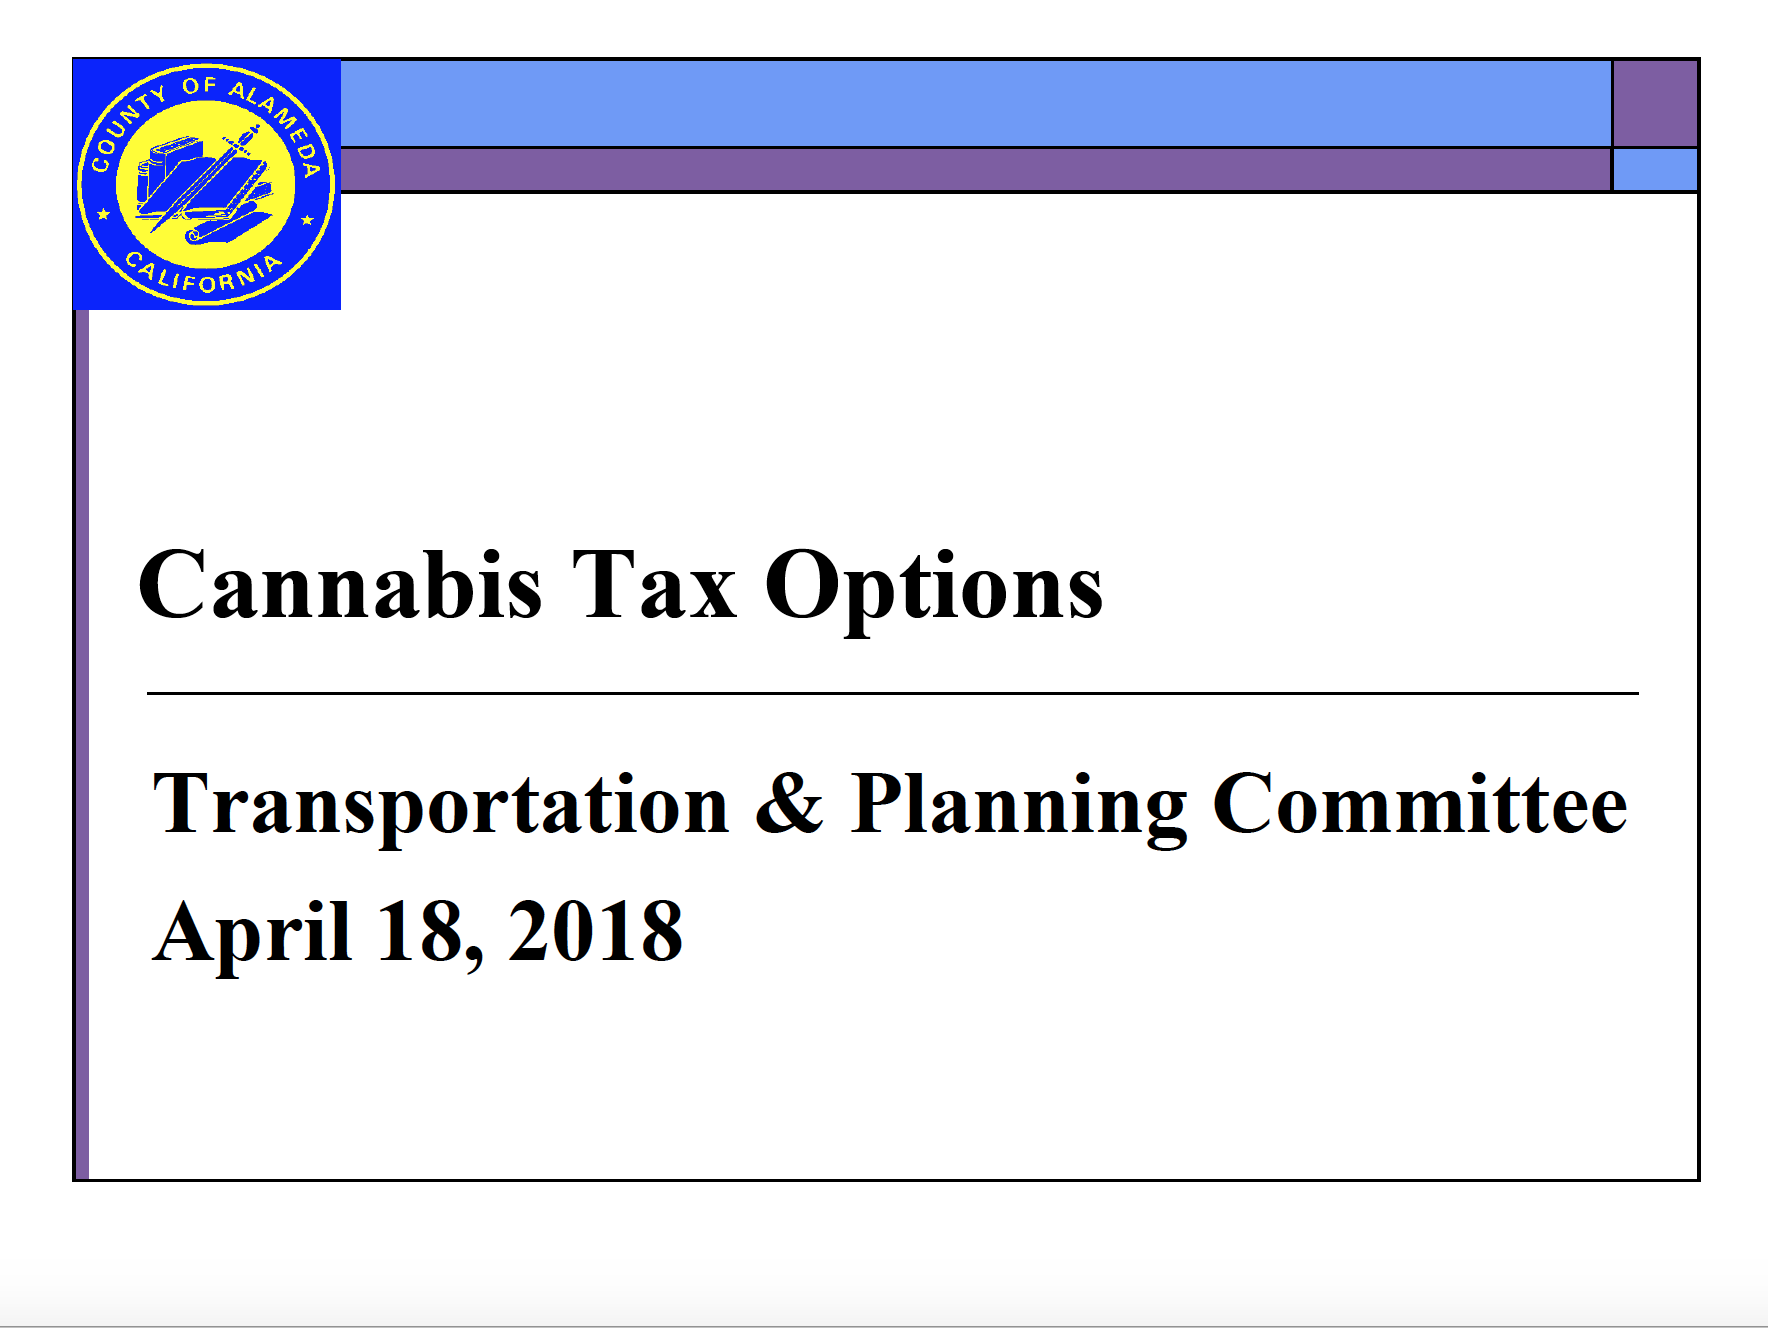 Tax Options.png